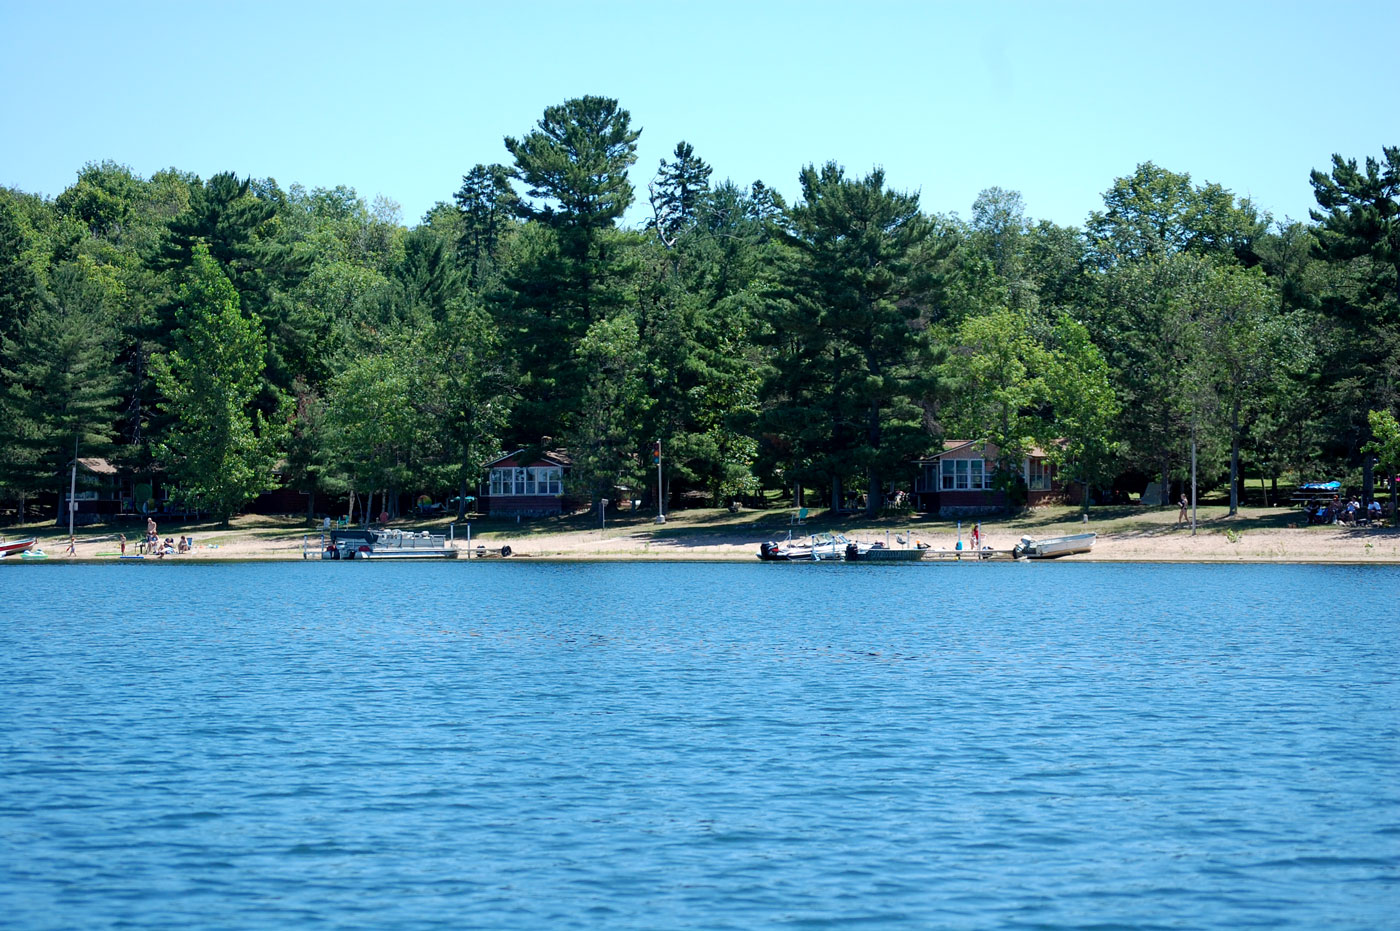 cabins and beach from water